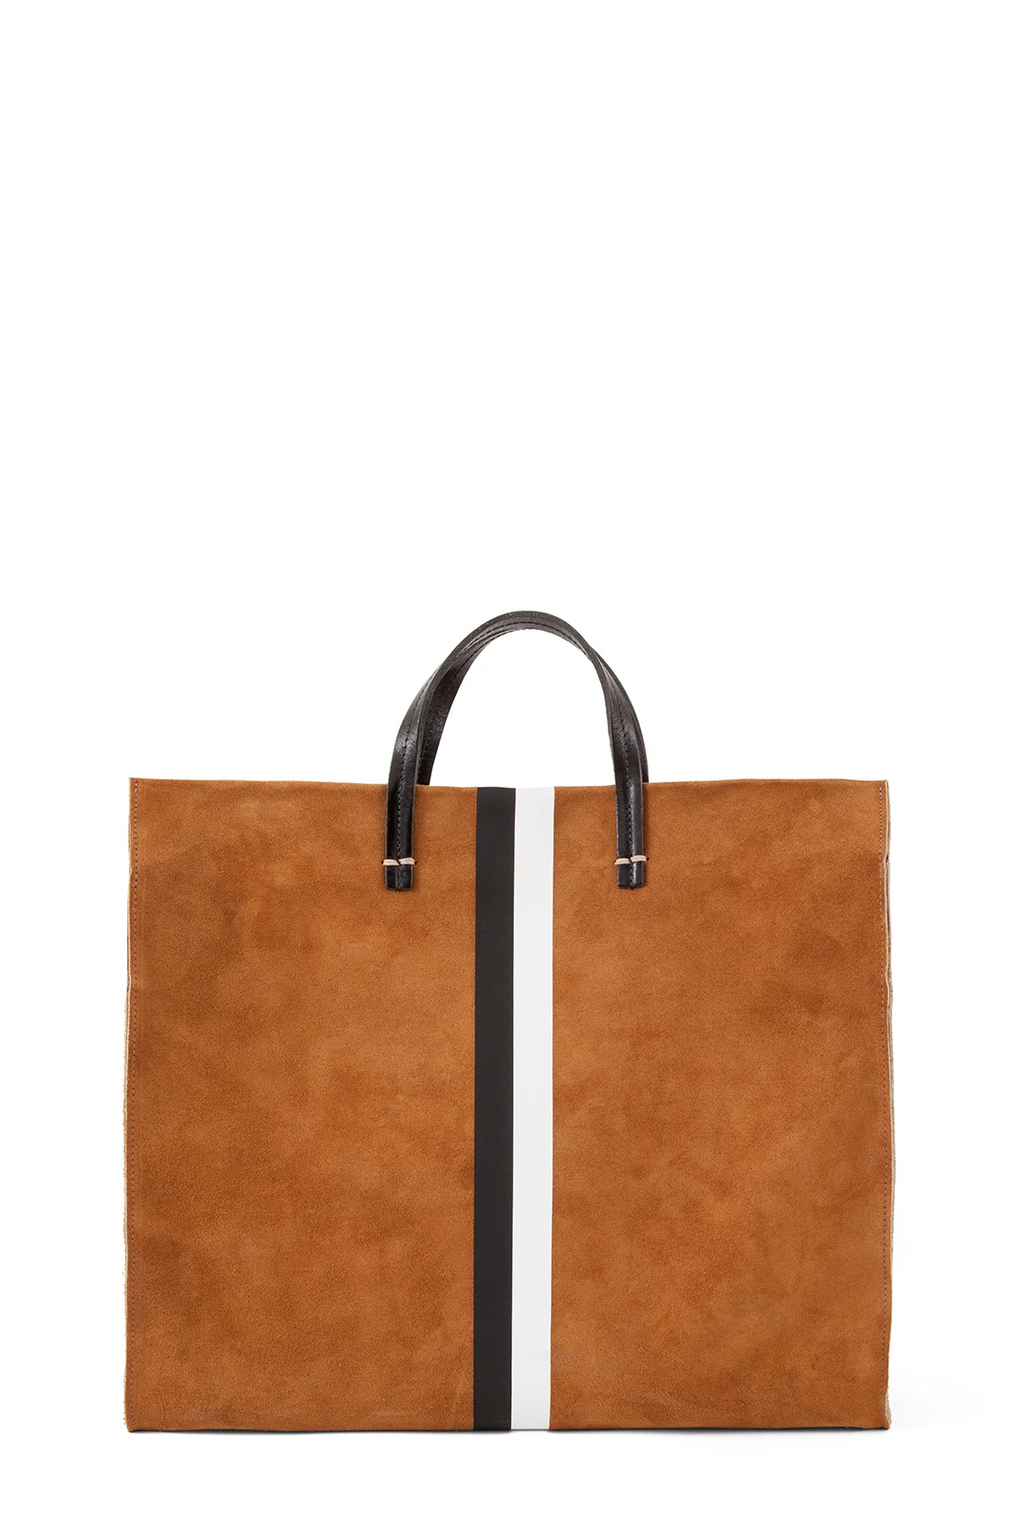 clare v. simple tote camel suede b/w stripes